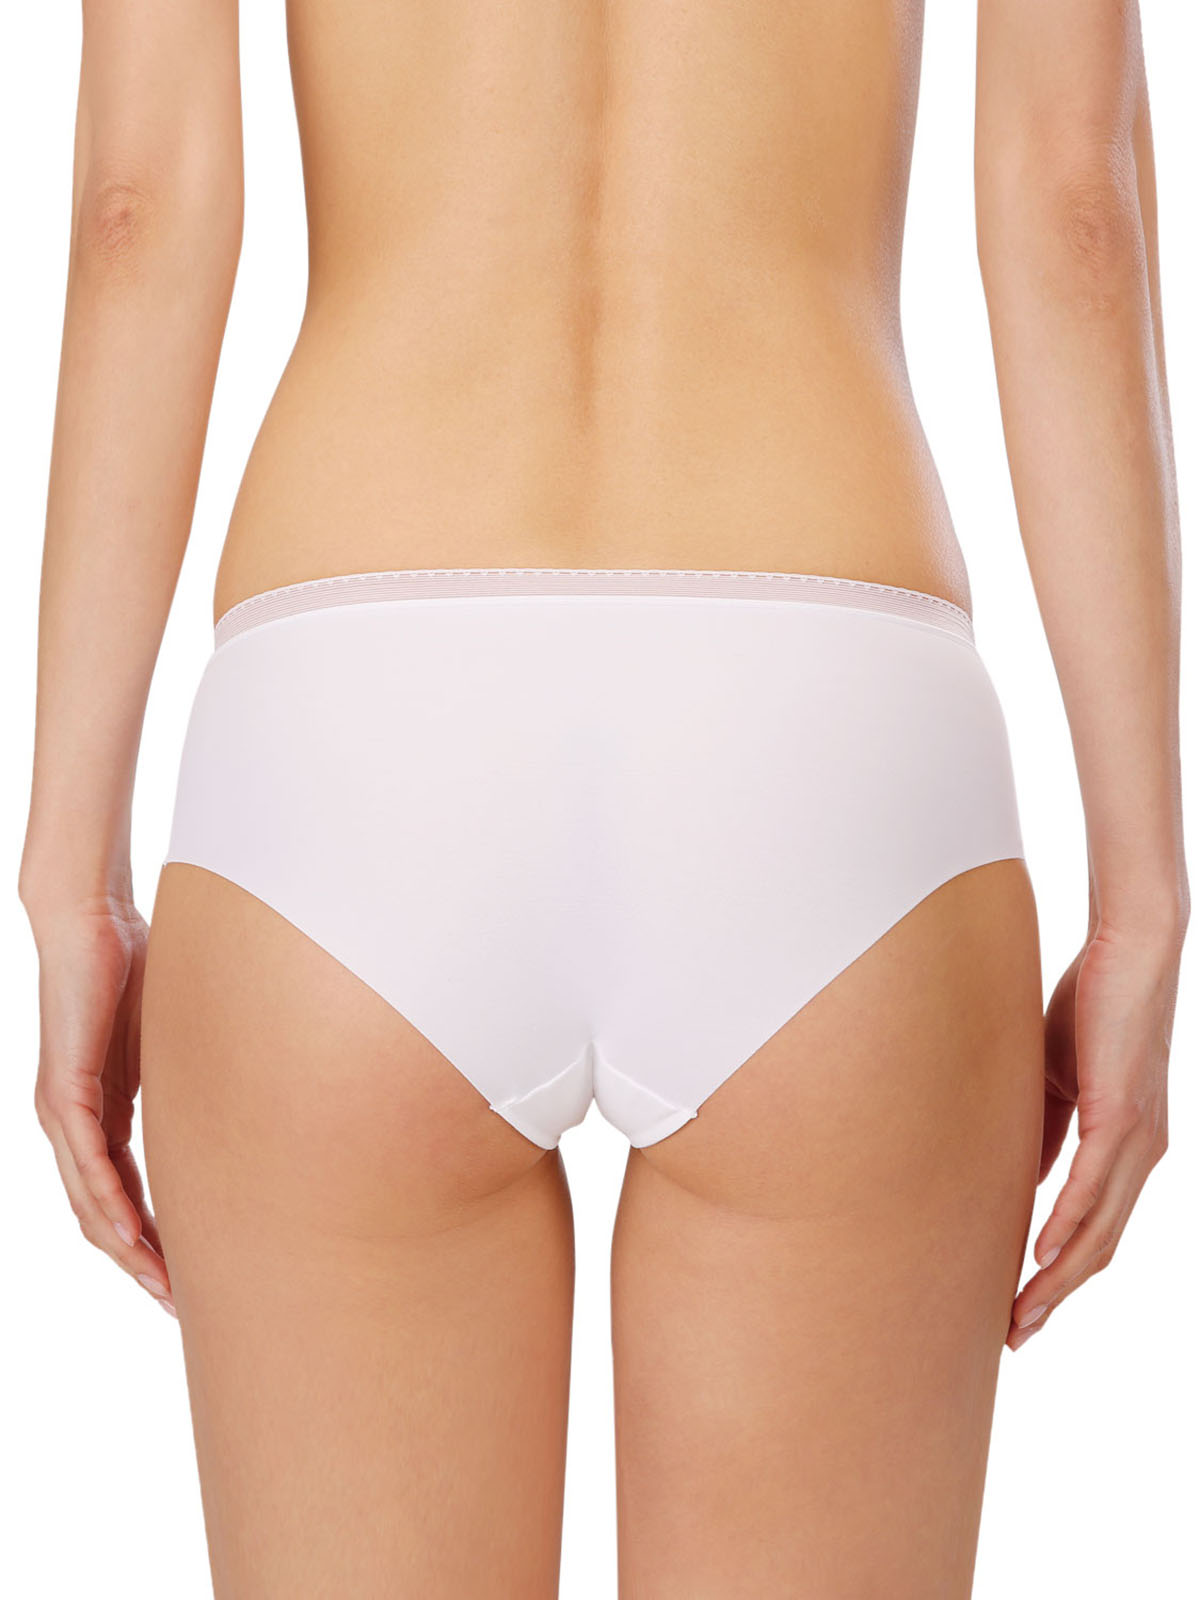 Naturana Invisible Touch Women'S Panties 4682